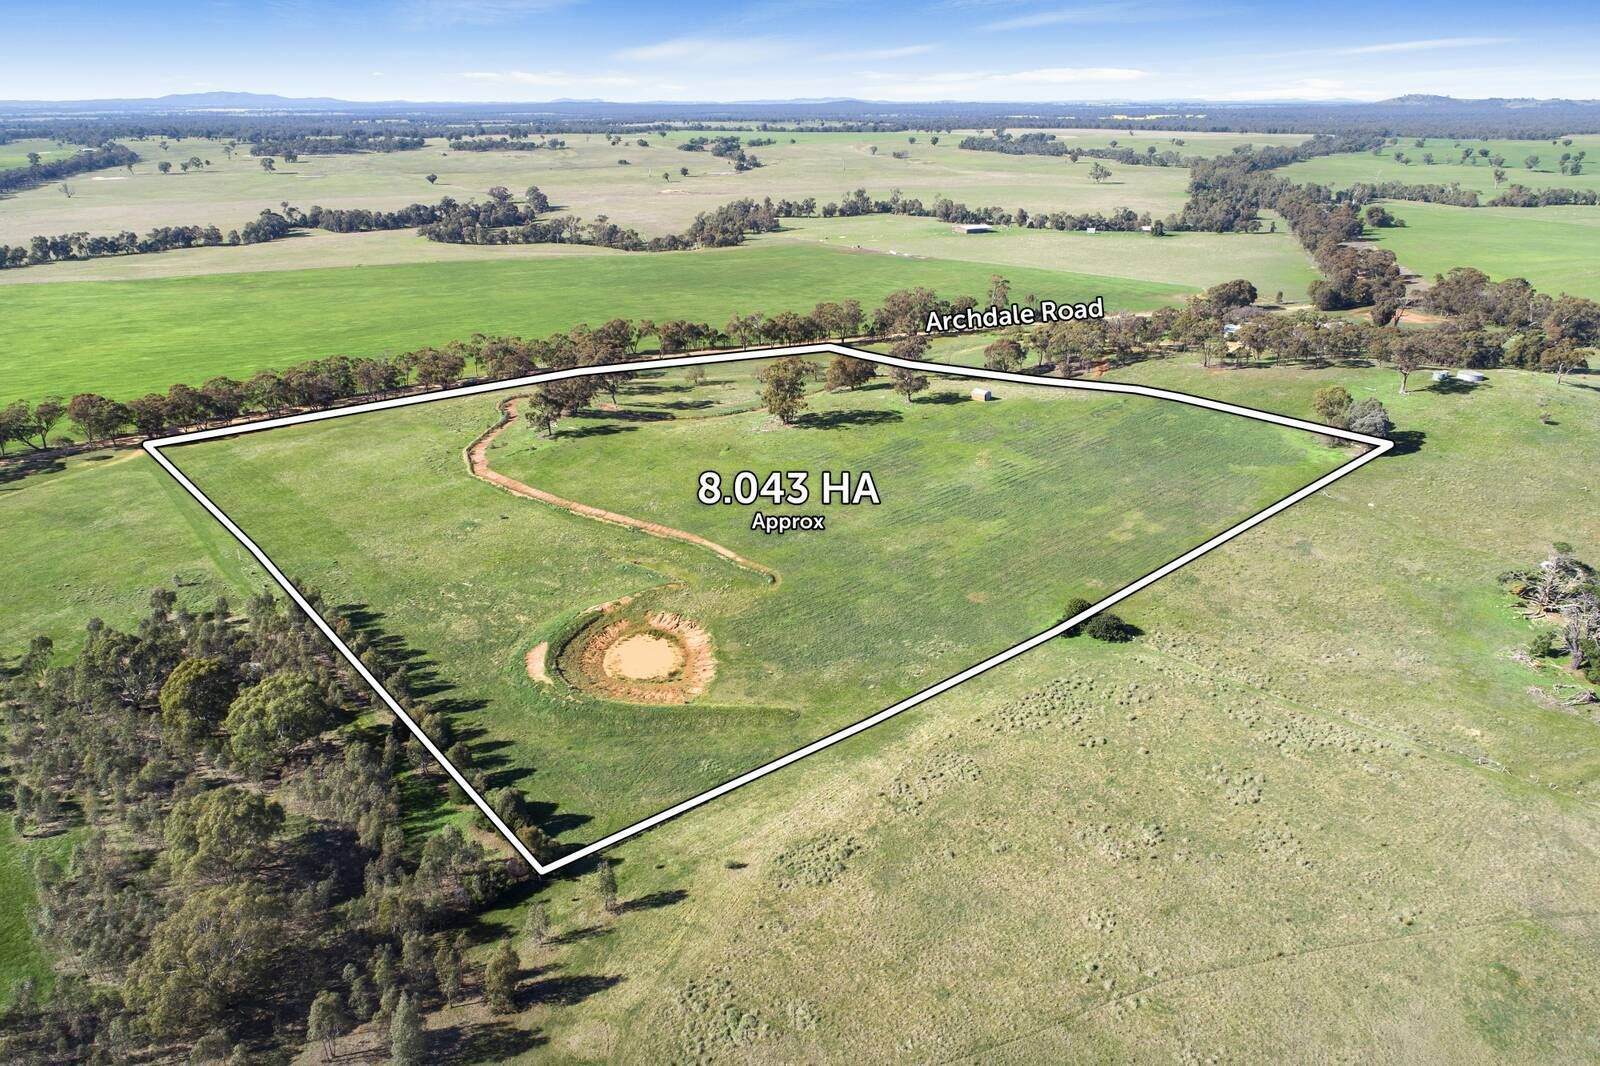 C/A 42 Archdale Road, Carapooee VIC 3477, Image 2